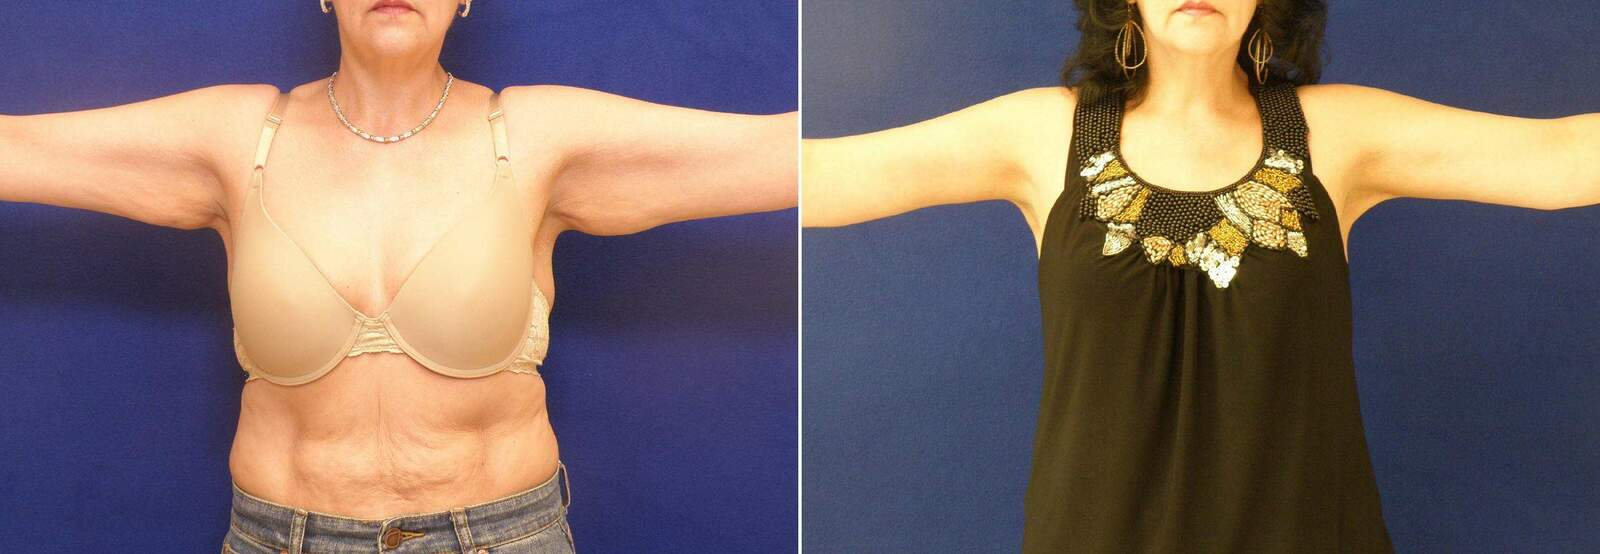 Before and After Photos in , , Arm Lift in Lexington, KY